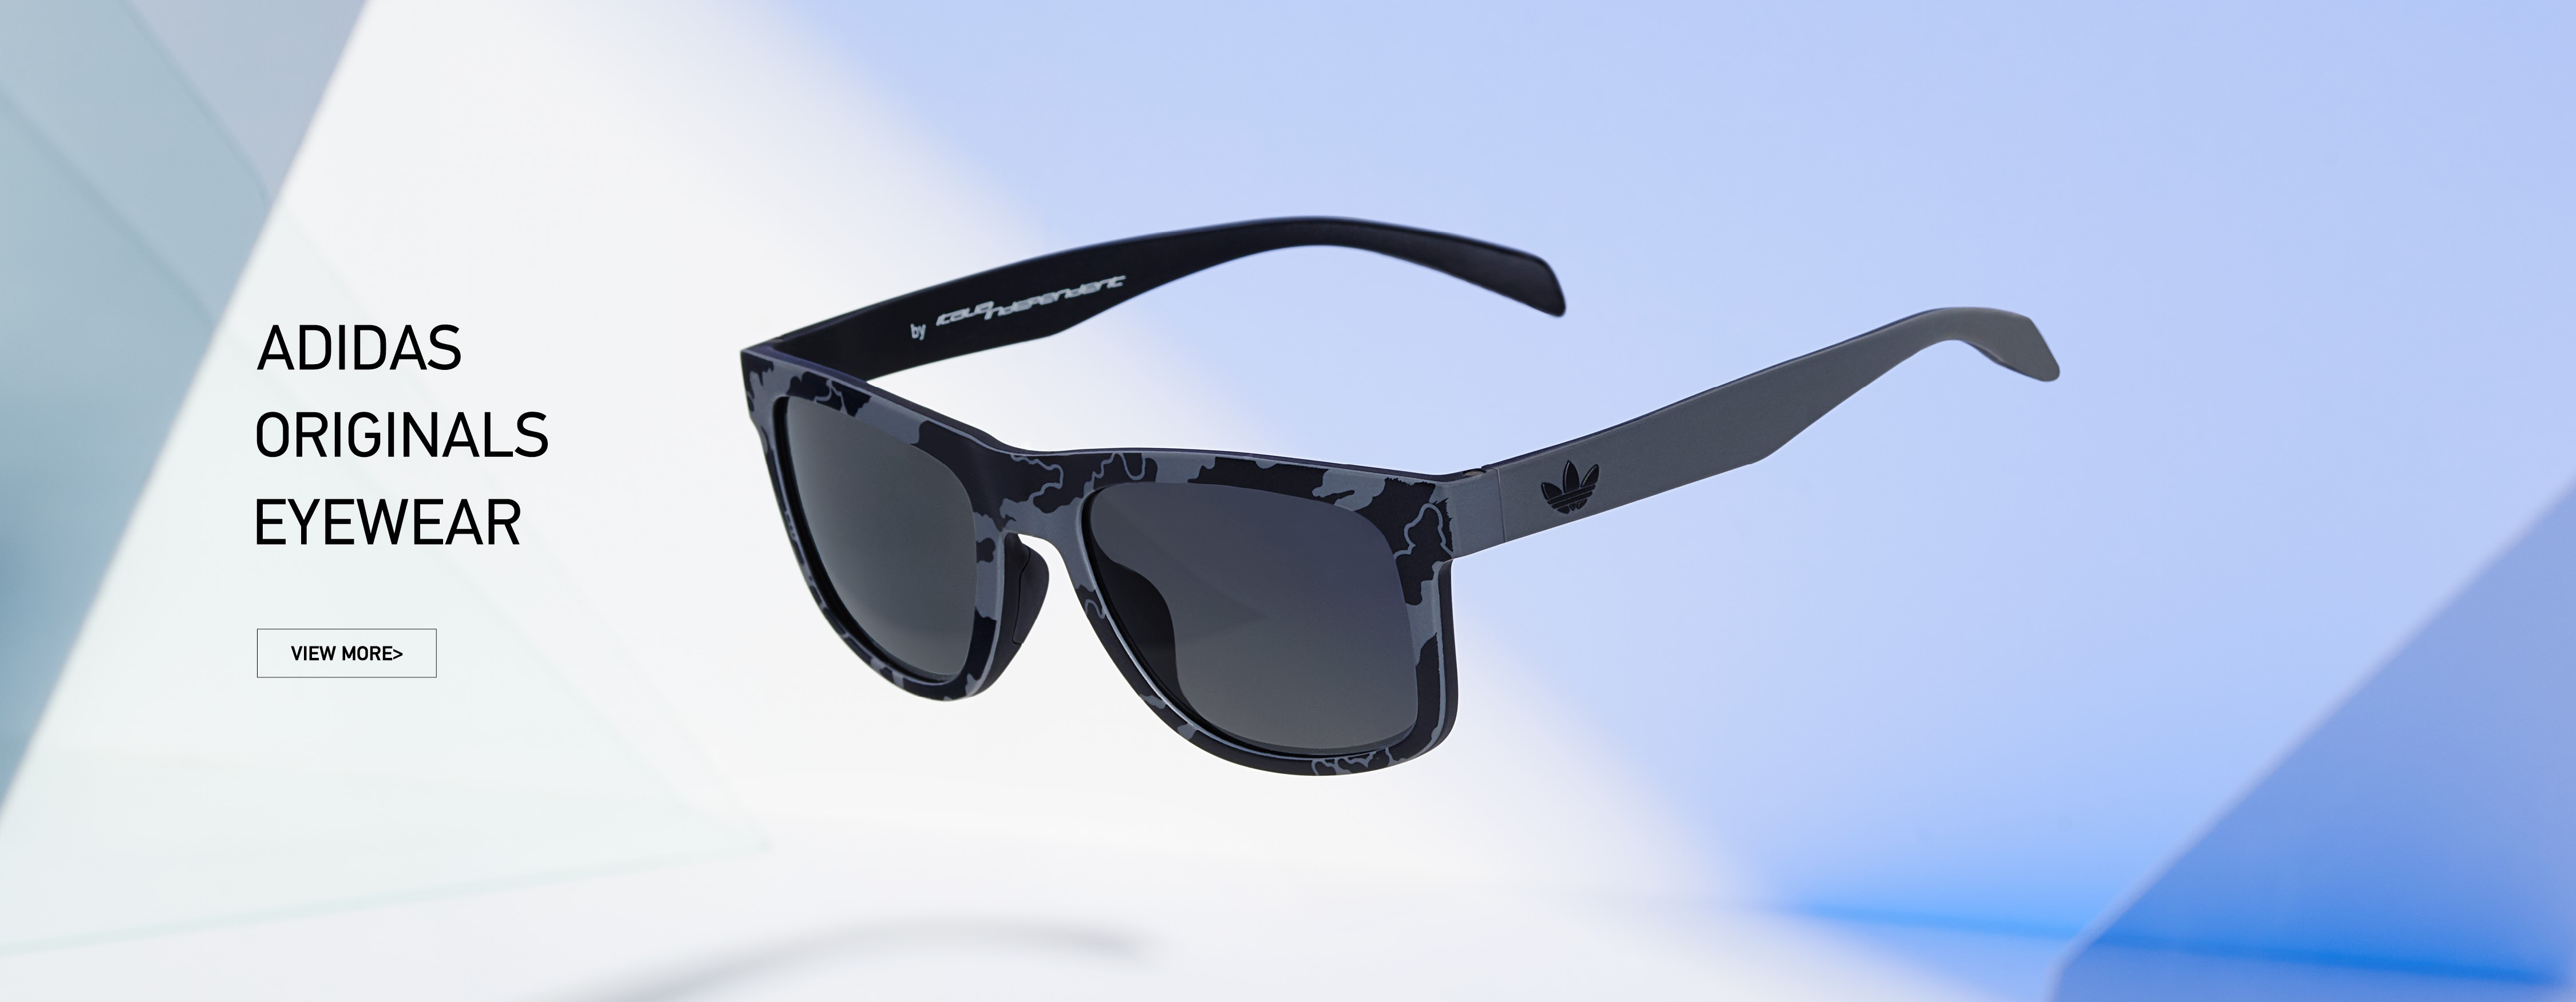 Look Out For The New Adidas Eyewear Sunglass Collection